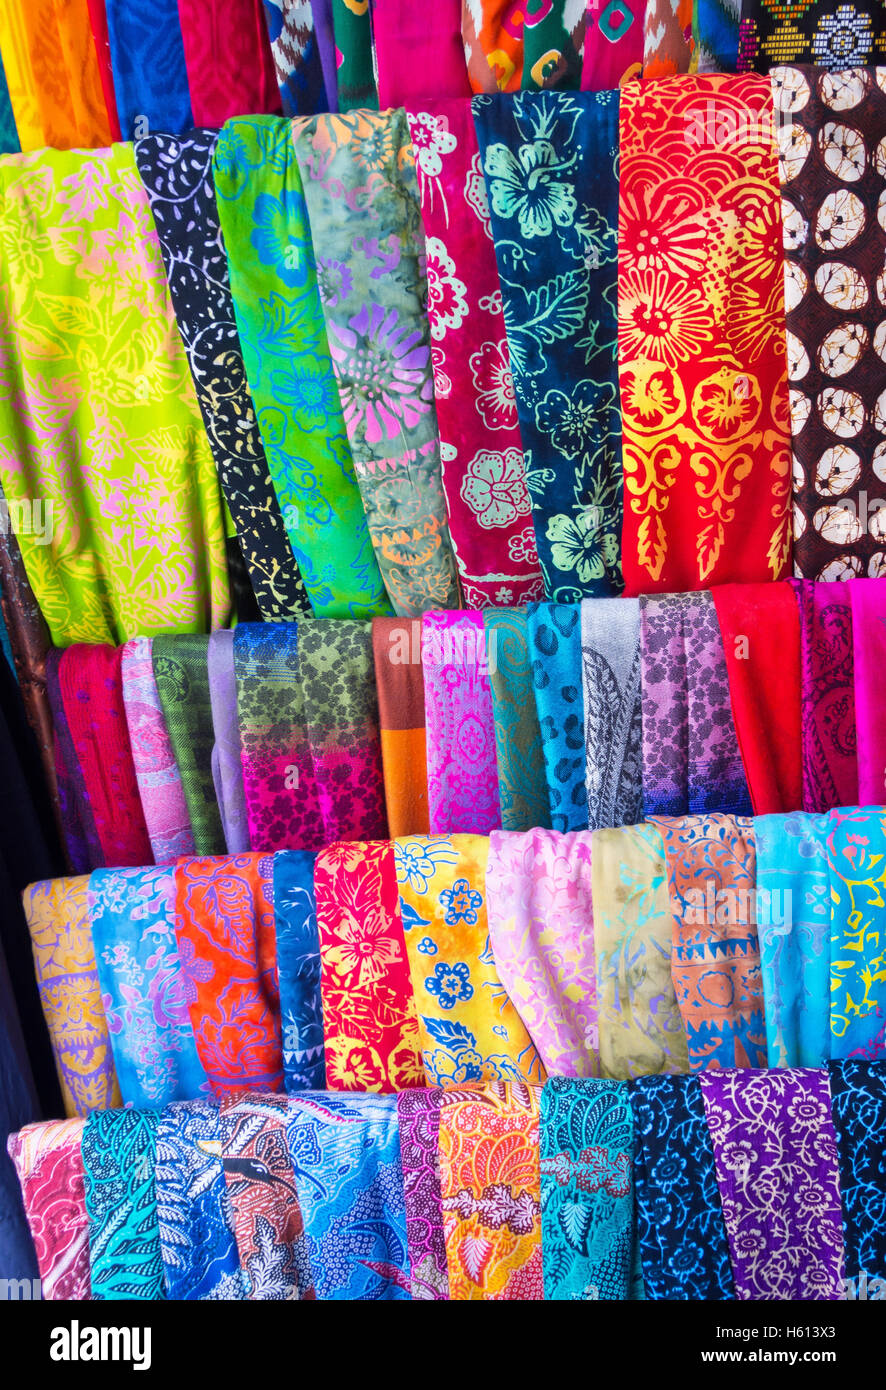 Colorful sarongs on sale in the market at Ubud in Bali, Indonesia. - Stock Image